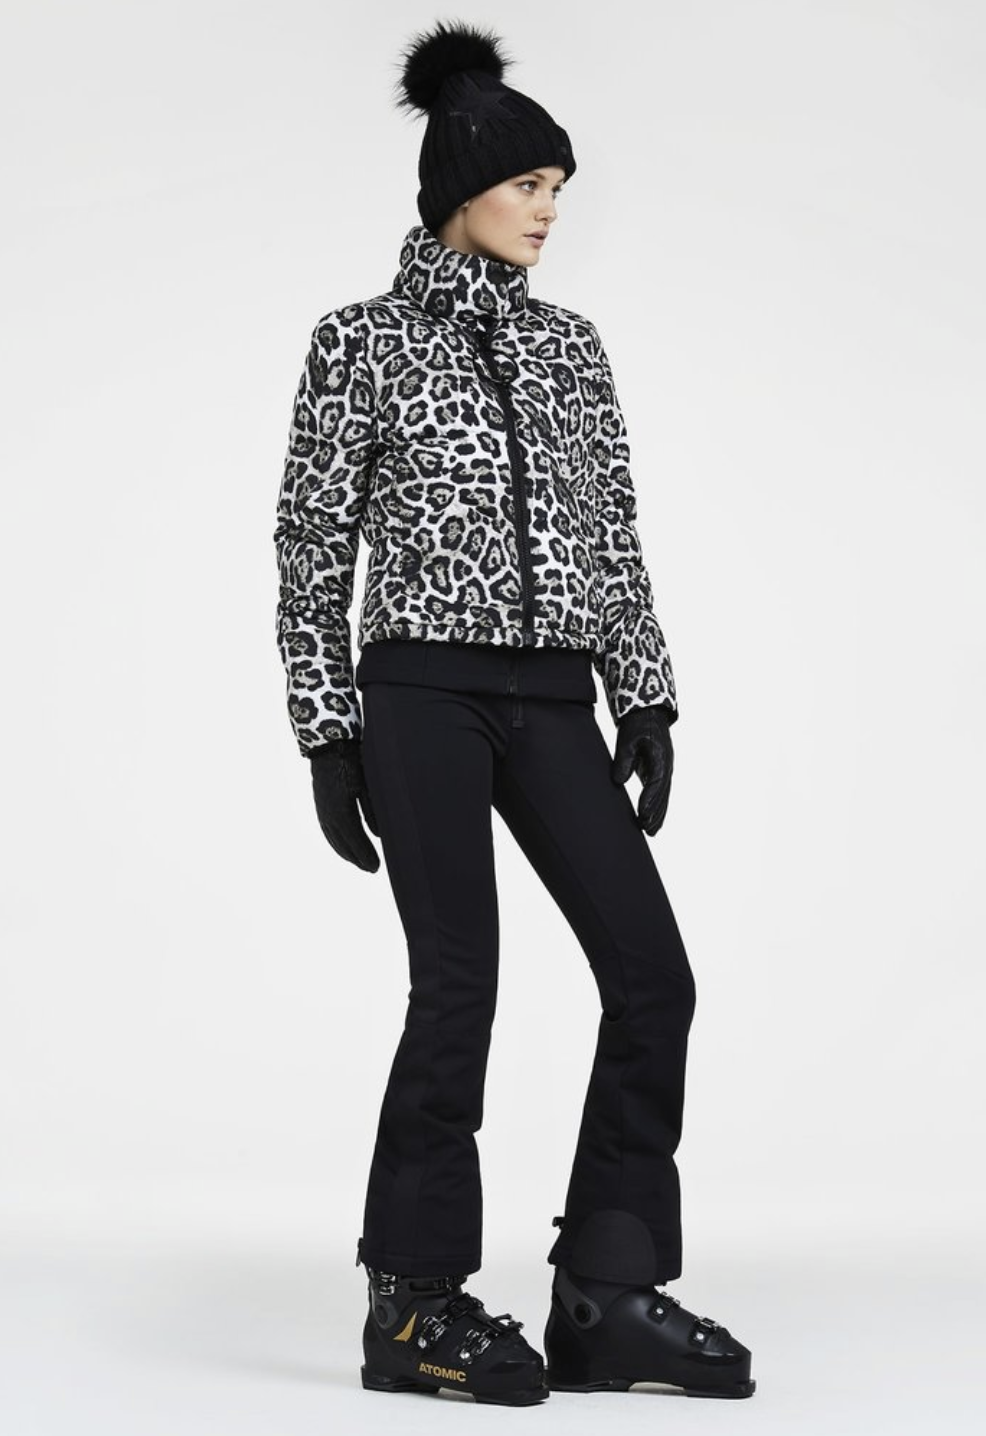 Goldbergh Lua Leopard Print Downfilled Ski Jacket